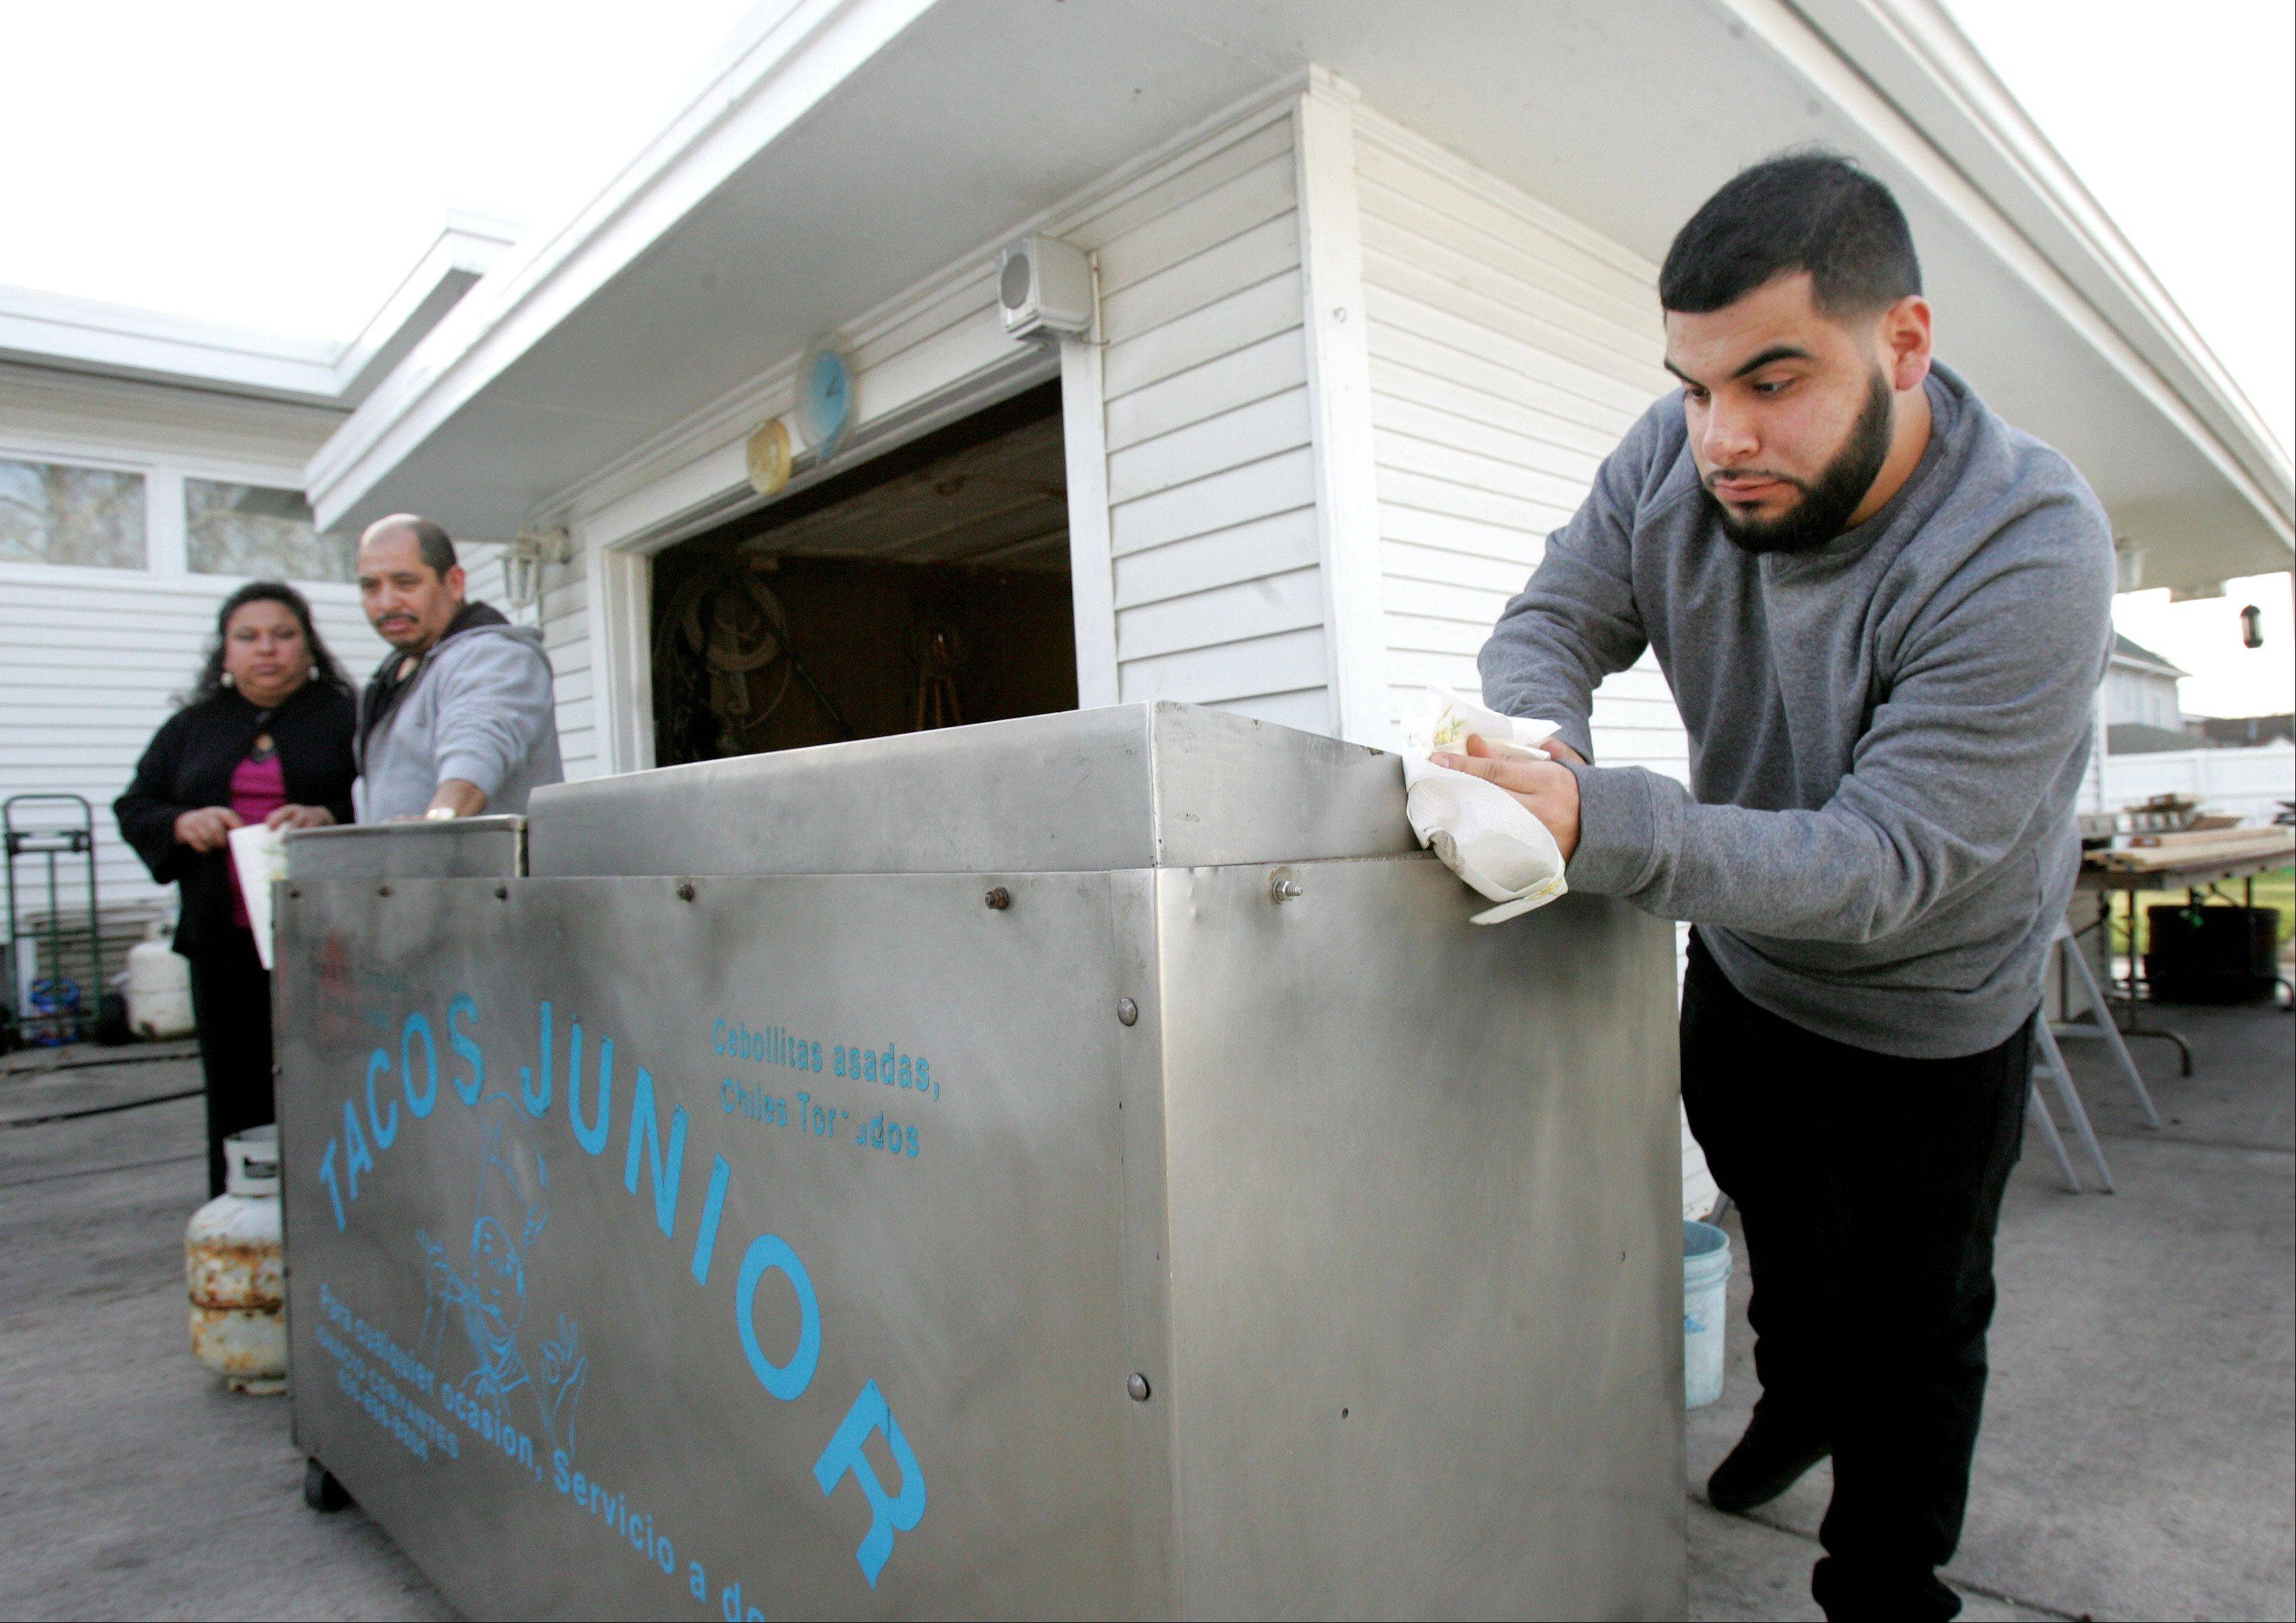 "Ignacio ""Nacho"" Cervantes Jr. cleans up a taco cart for Tacos Junior, the catering business owned by his family, as his parents look on at their Aurora home. In January, Ignacio will be recognized as one of the ""Phenomenal Men of the Year"" by the Aurora-based organization Boys II Men."